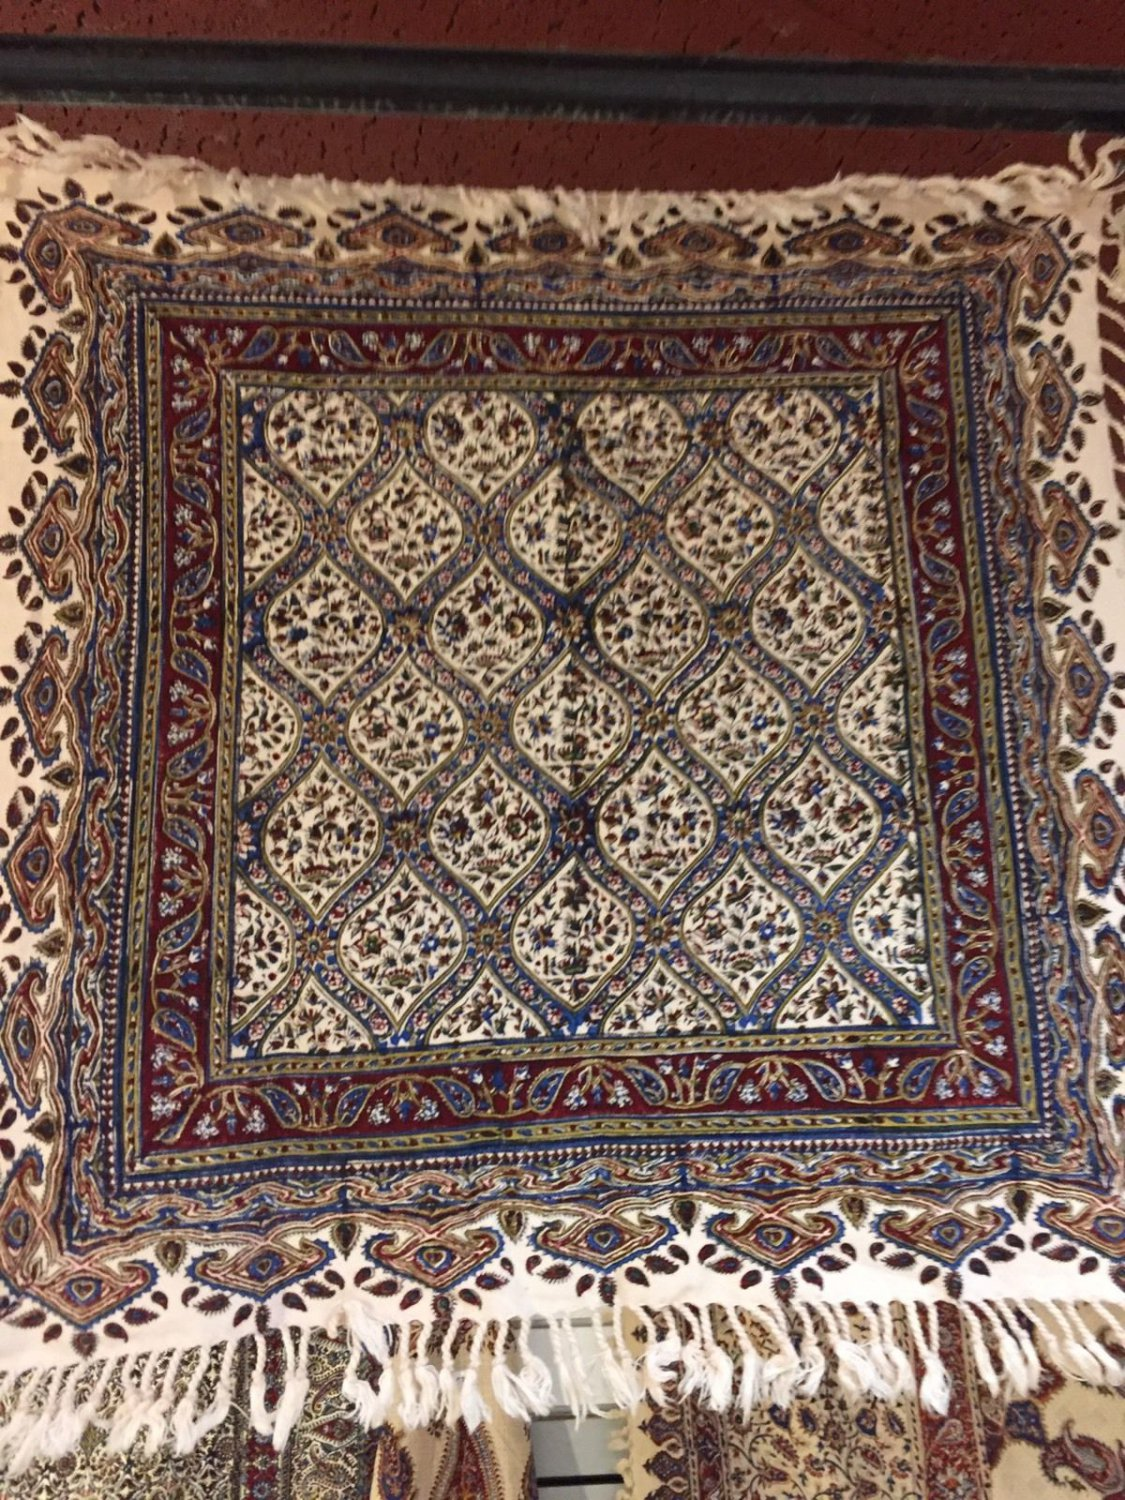 Calico Wall Hanging Cotton Hand Made Home Decorpersian Art Natural